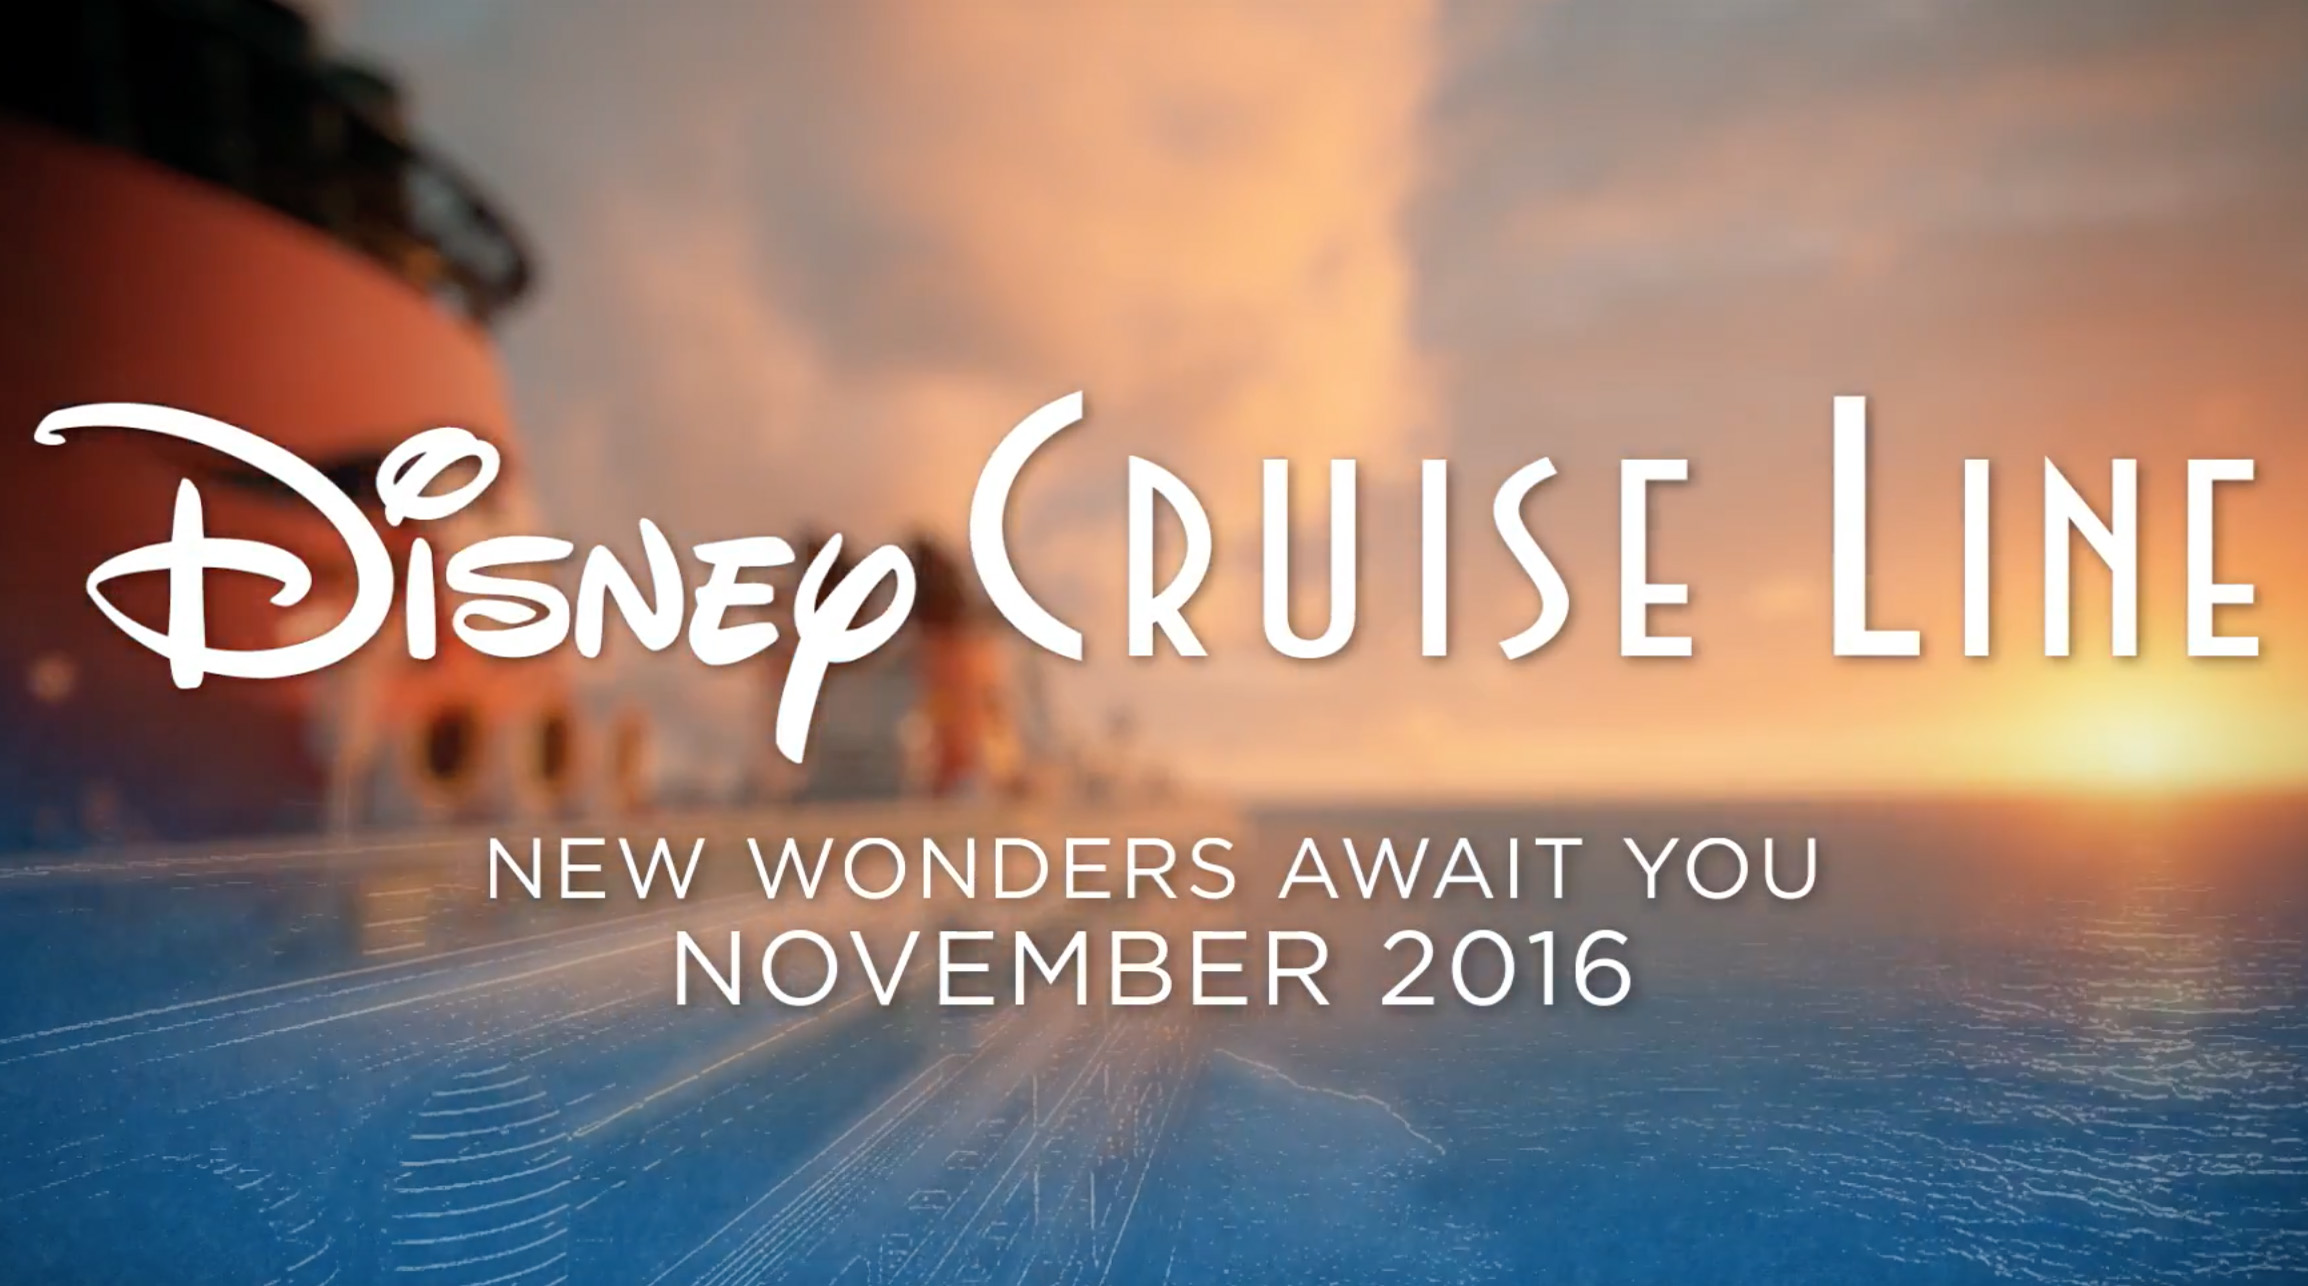 Disney Wonder Gets Ready to Premiere New Experiences This Fall